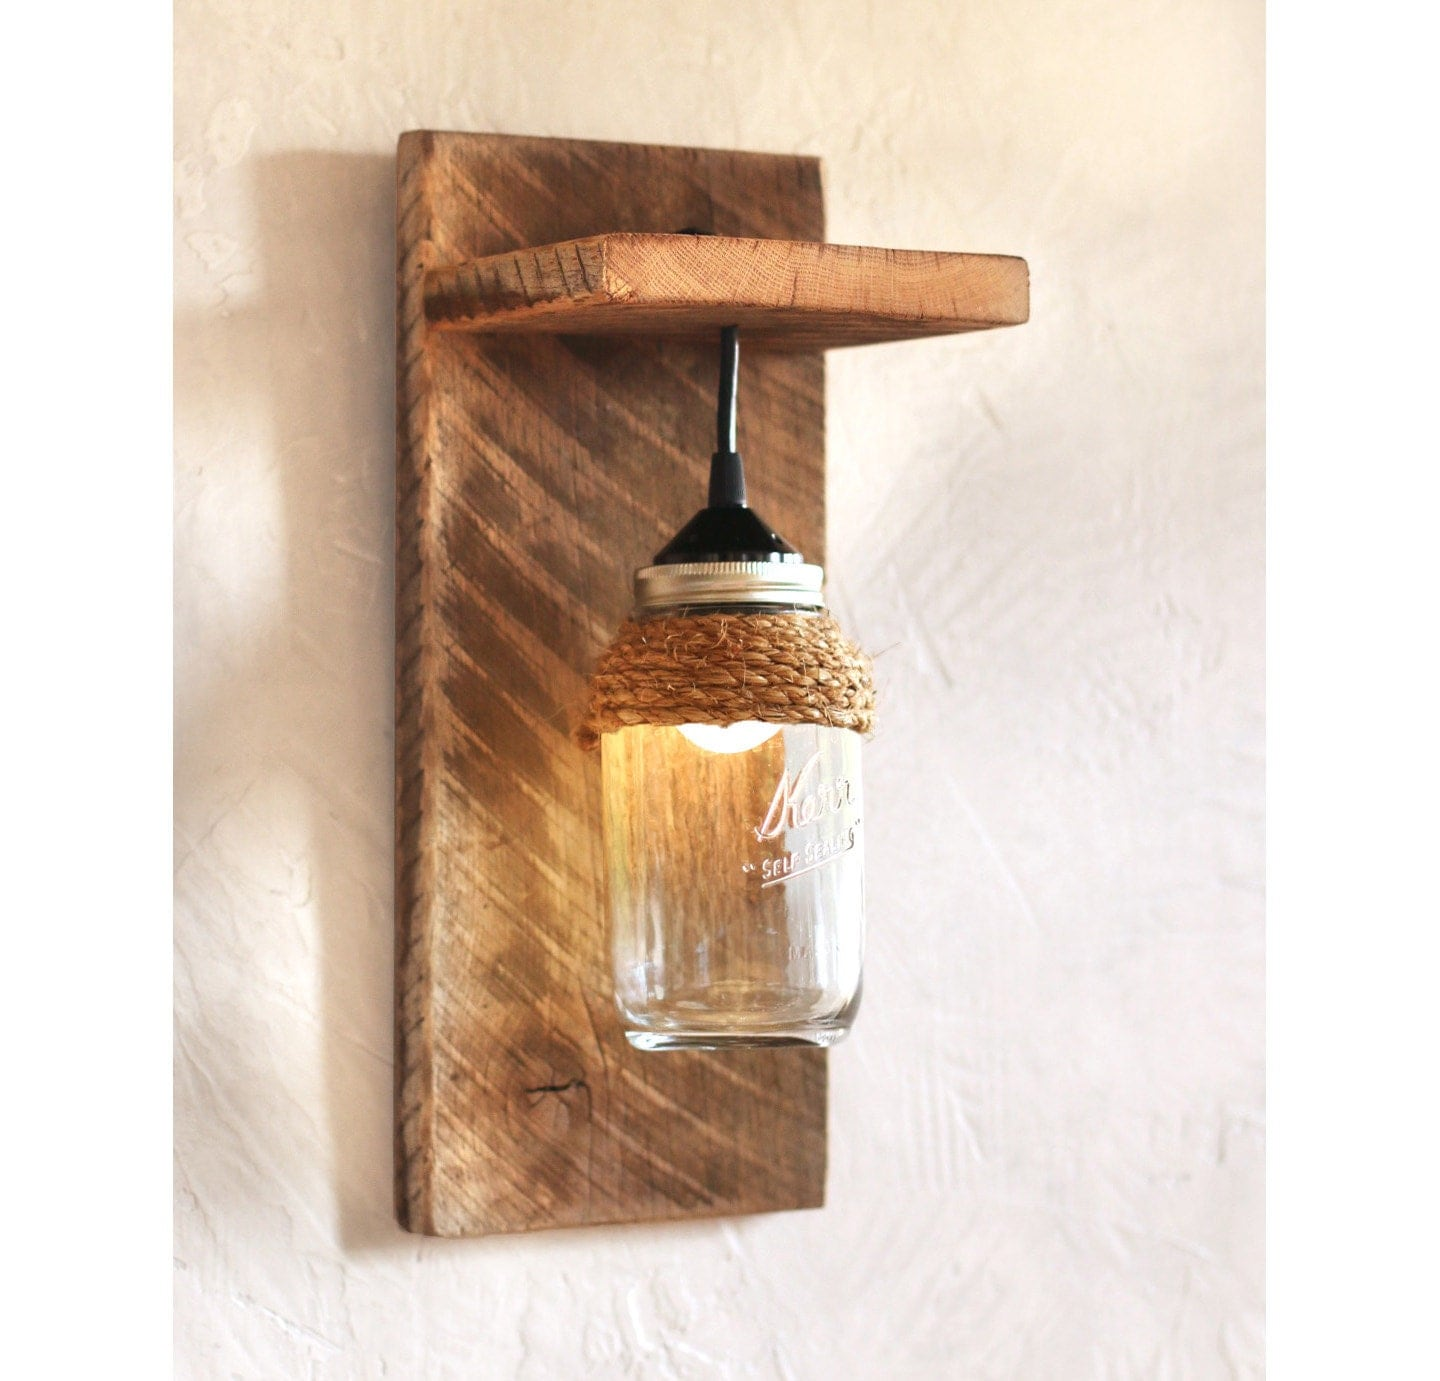 Antique Wall Sconce Lighting Fixtures : Mason jar light fixture Reclaimed wood wall sconce